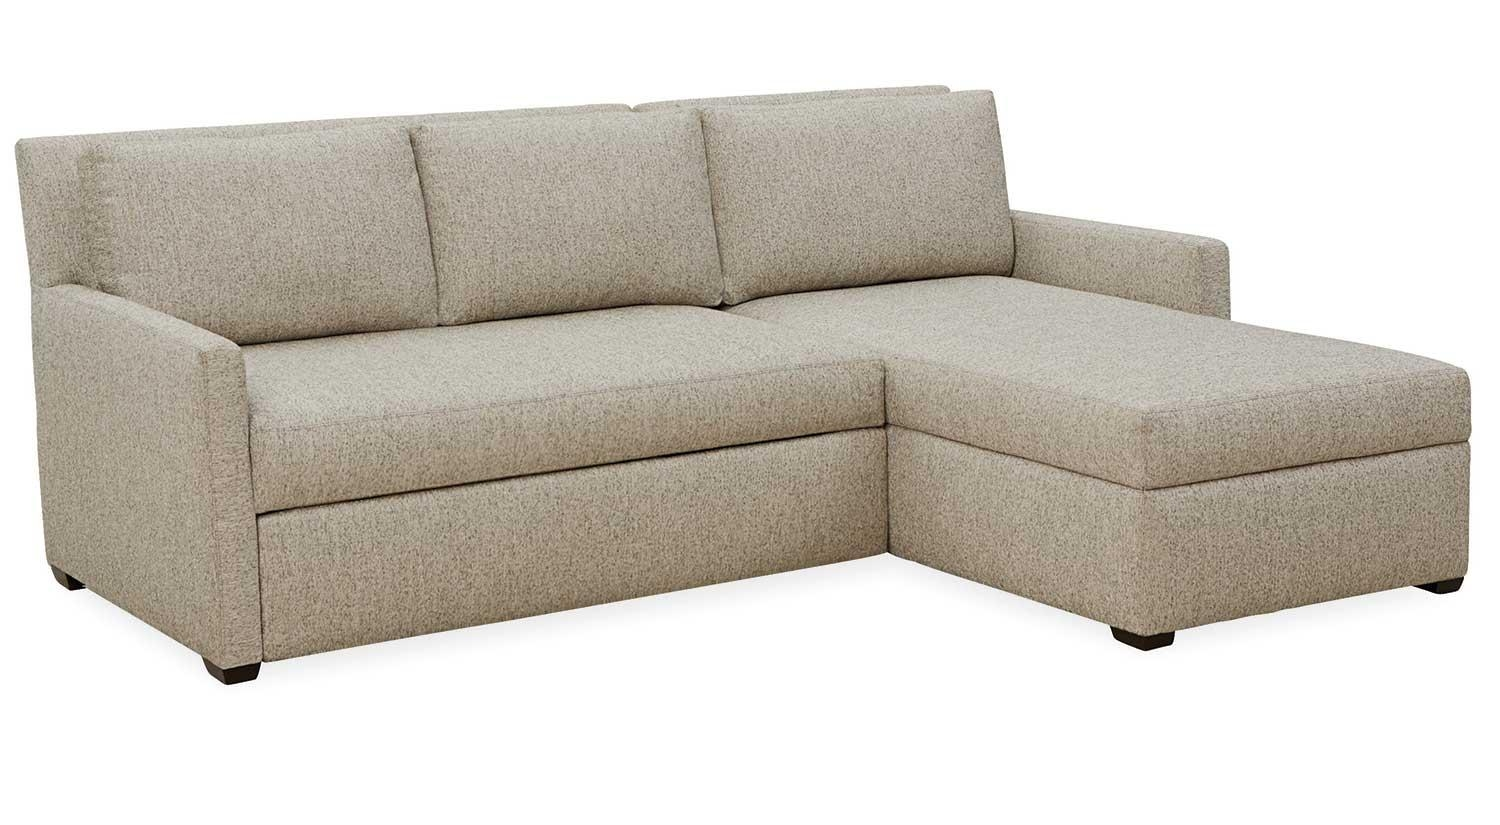 Circle Furniture – Sleeper Sofa | Sectional Sleepers | Circle In Austin Sectional Sofa (Image 4 of 15)